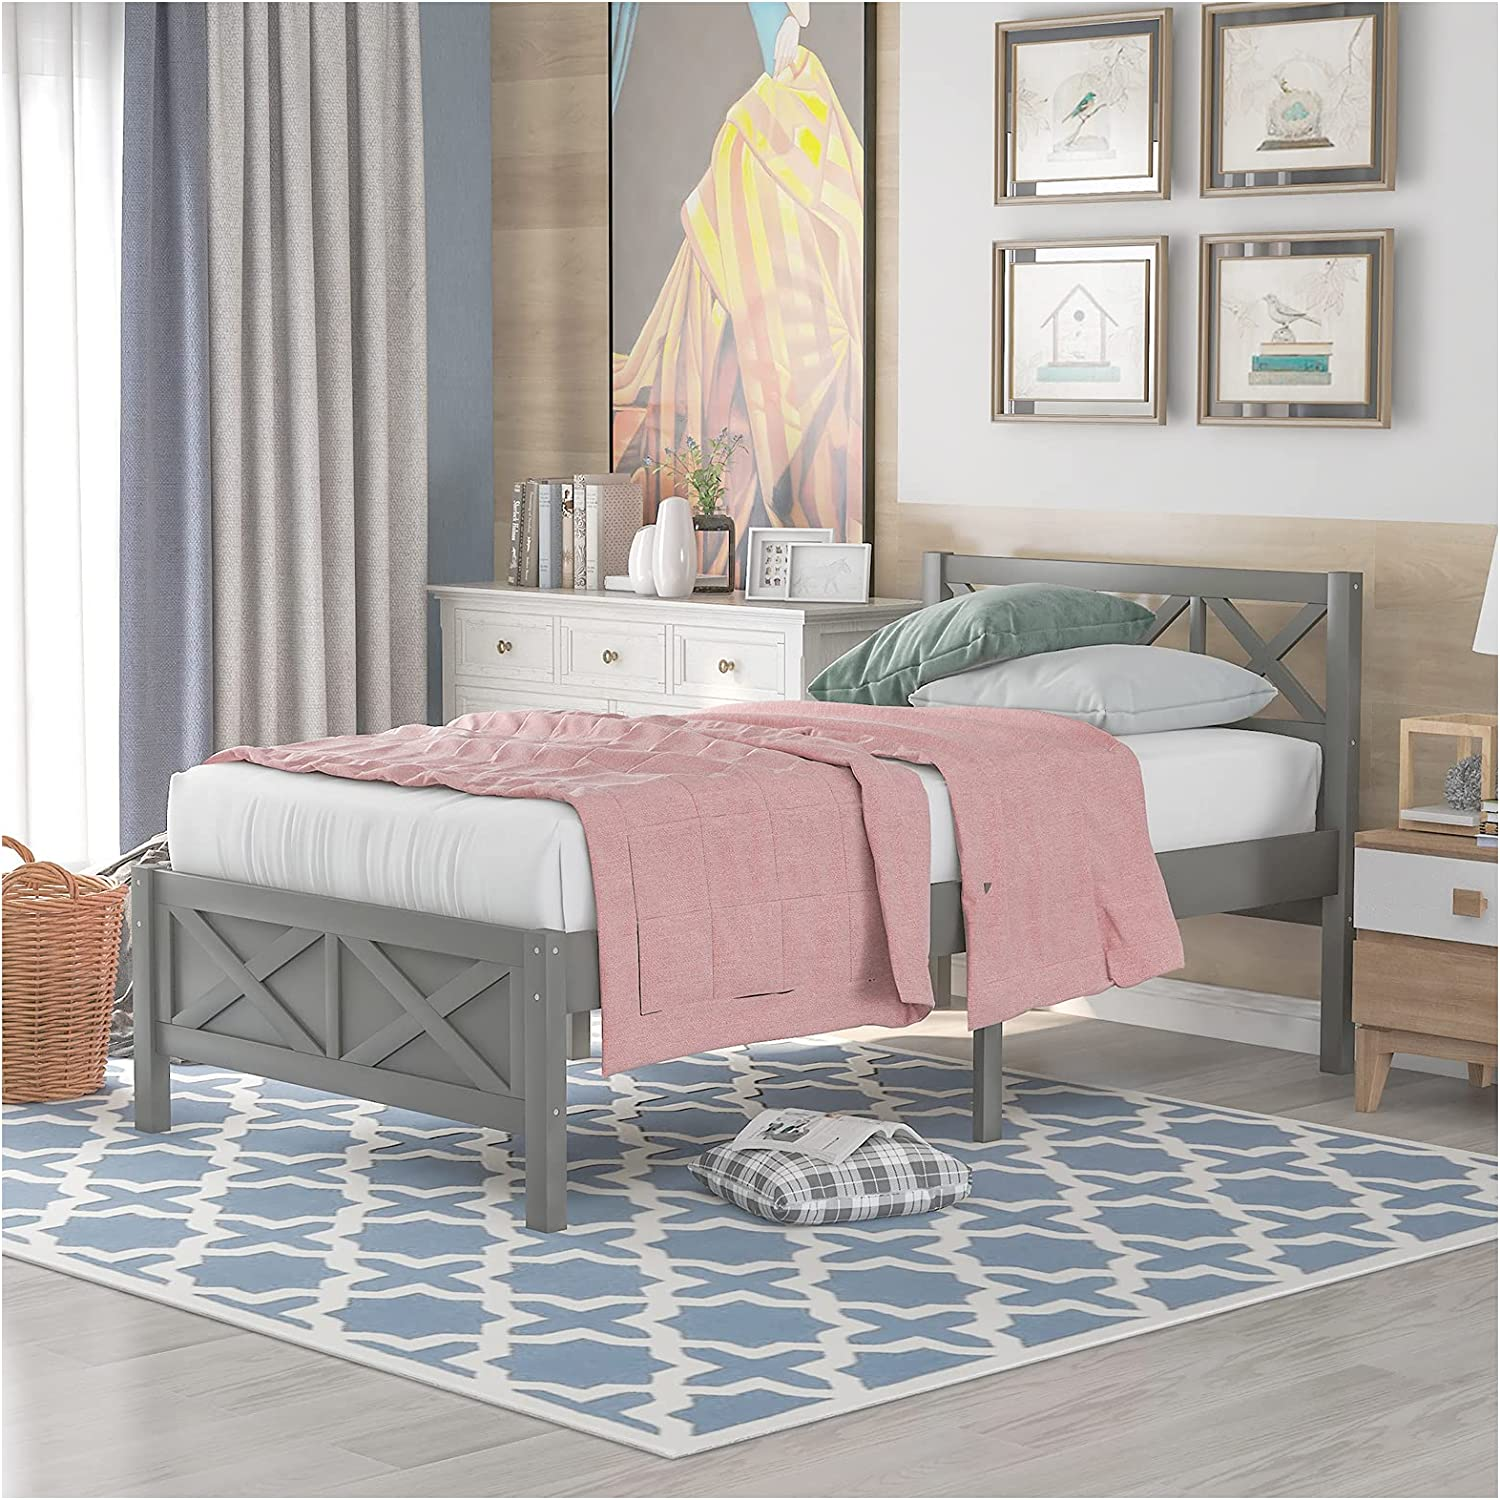 Wooden Max 43% OFF Platform Bed with Headboard Slat X-Shaped Special price Frame Wood Su